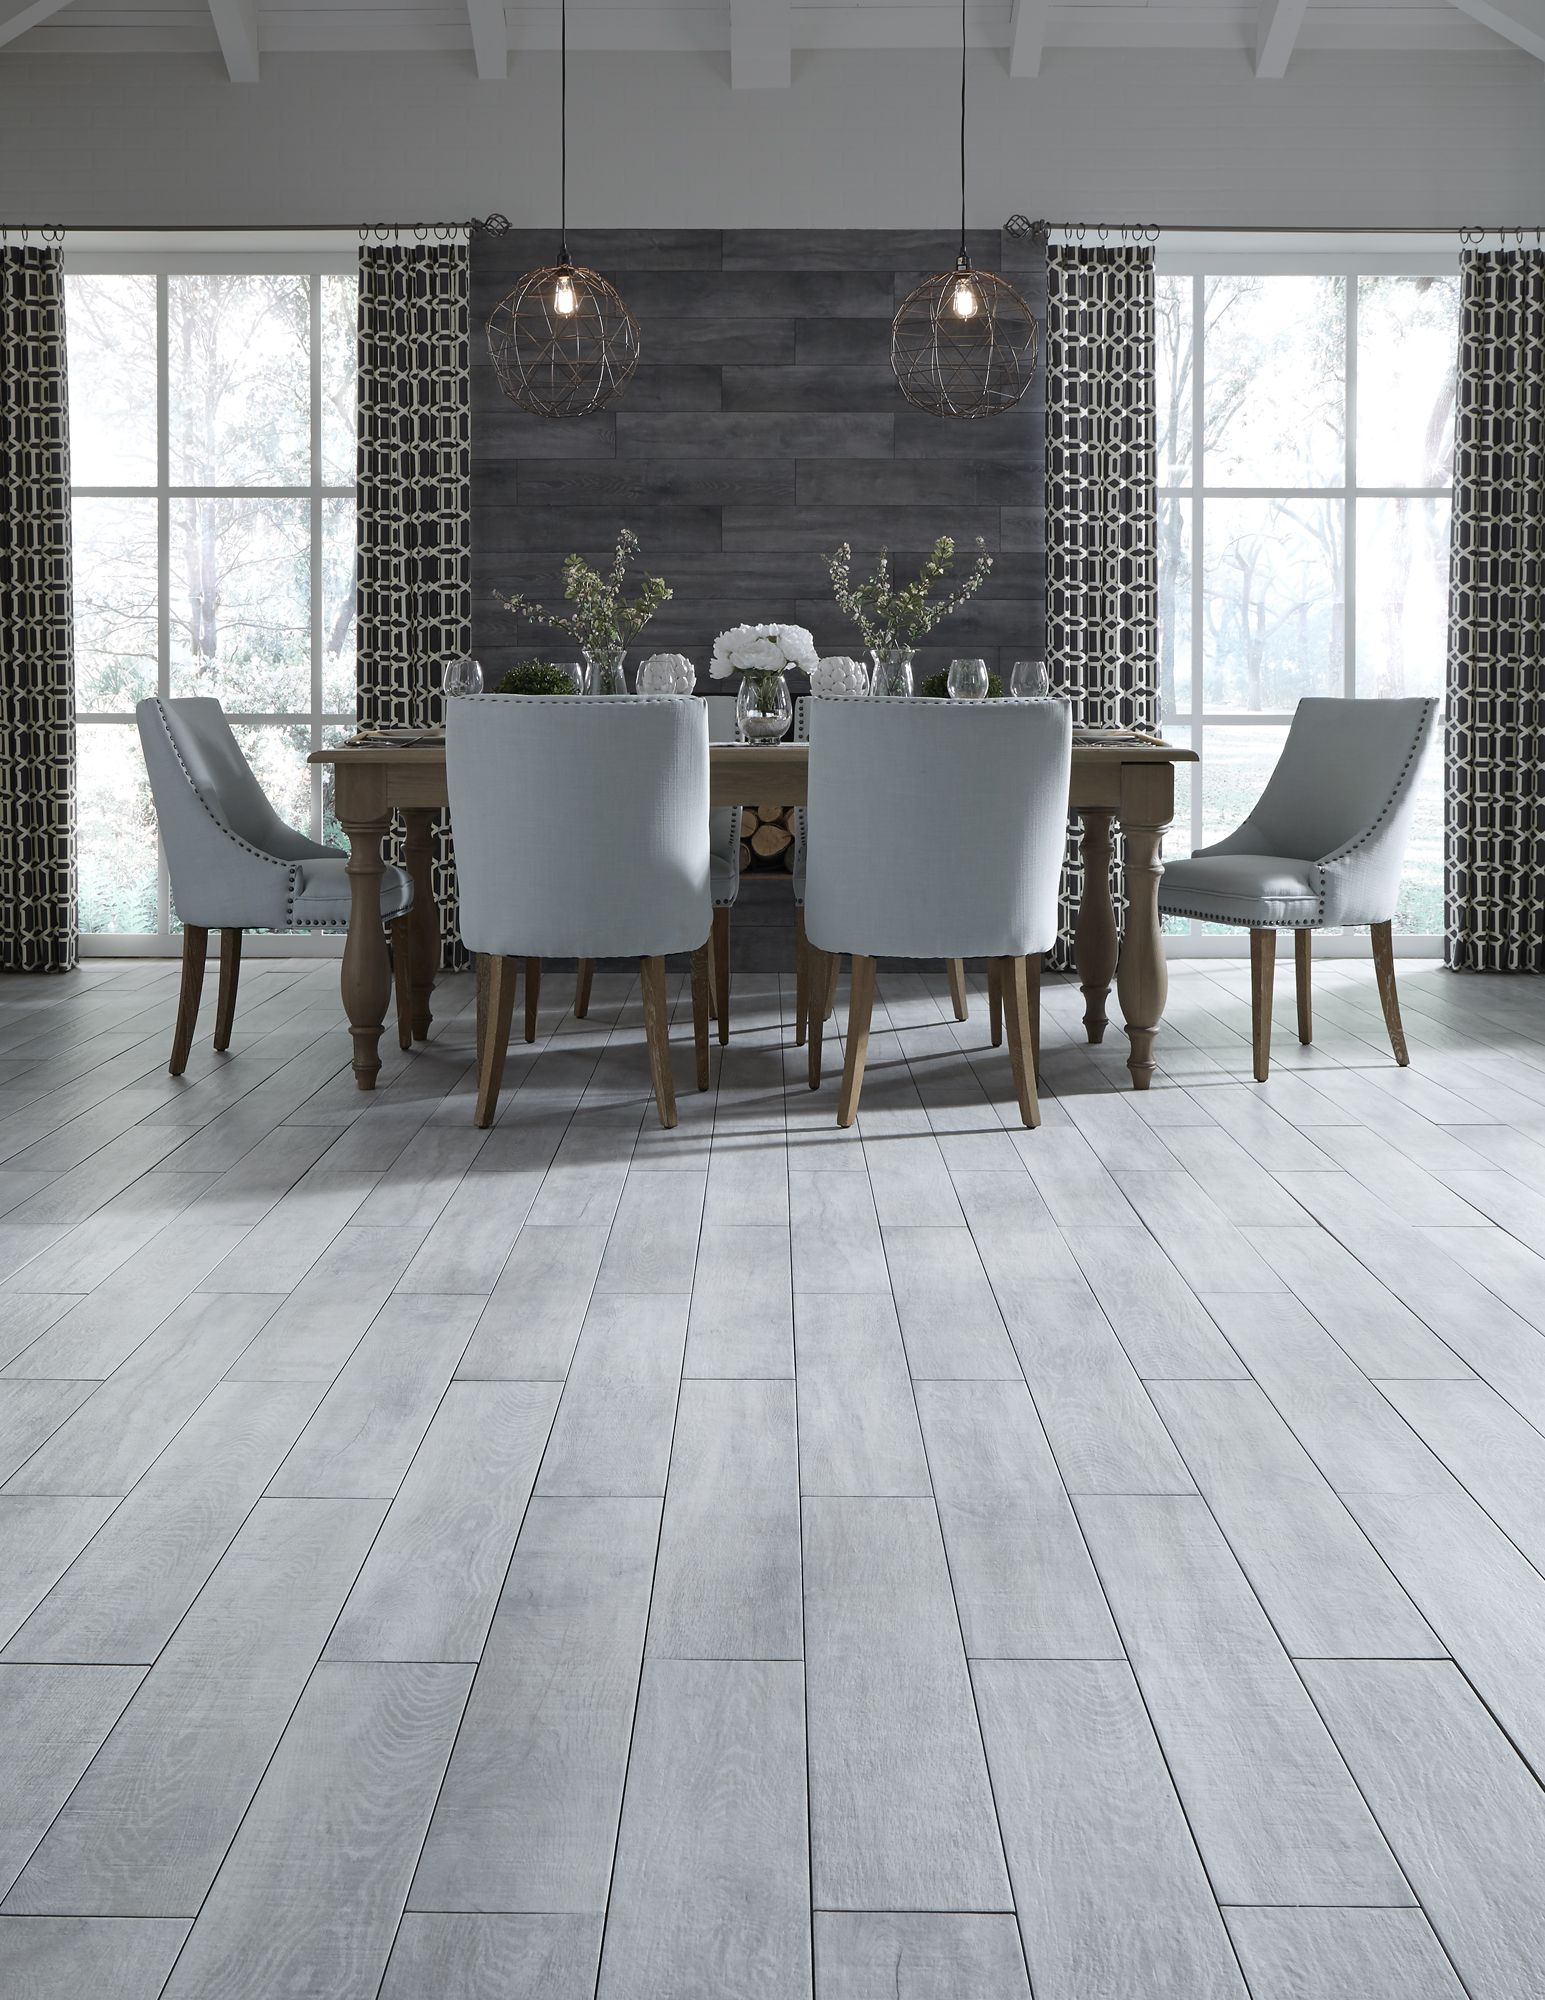 Waterproof Wood Look Tile Gives Any Room The Elegant Look Of